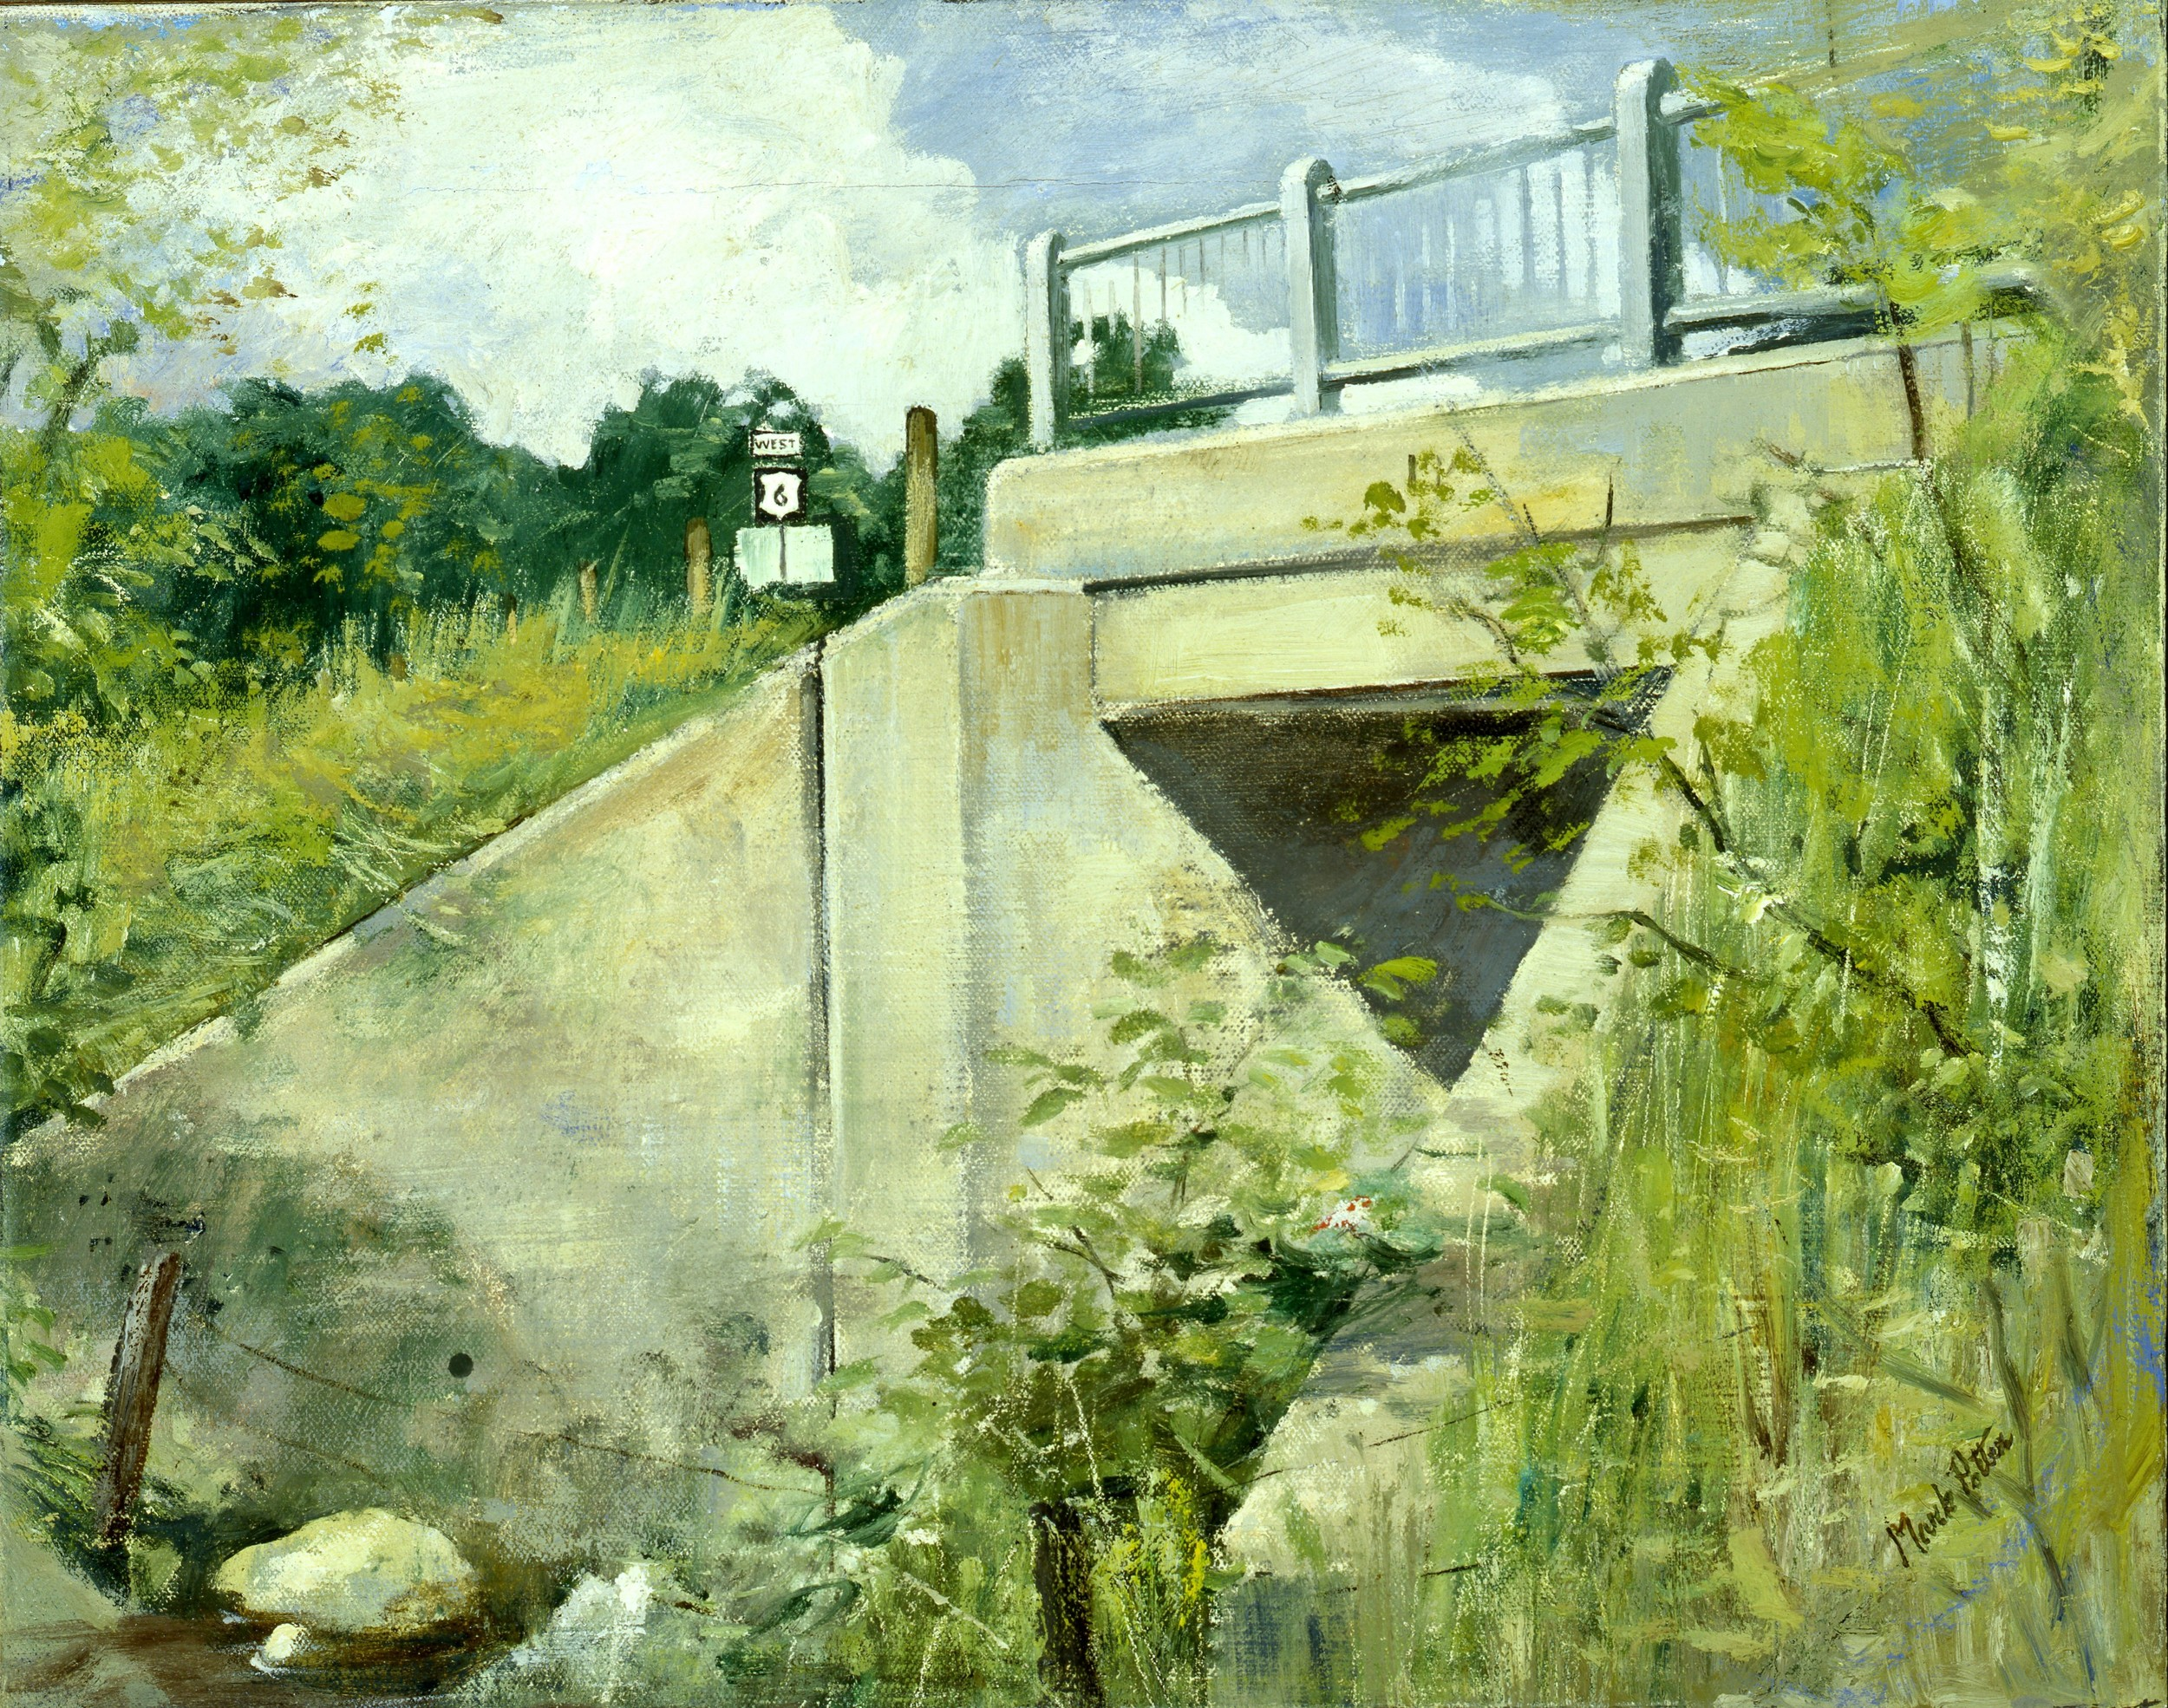 Bridge Under Route 6.      1980, oil on canvas. 14.4 x 18.1 inches.